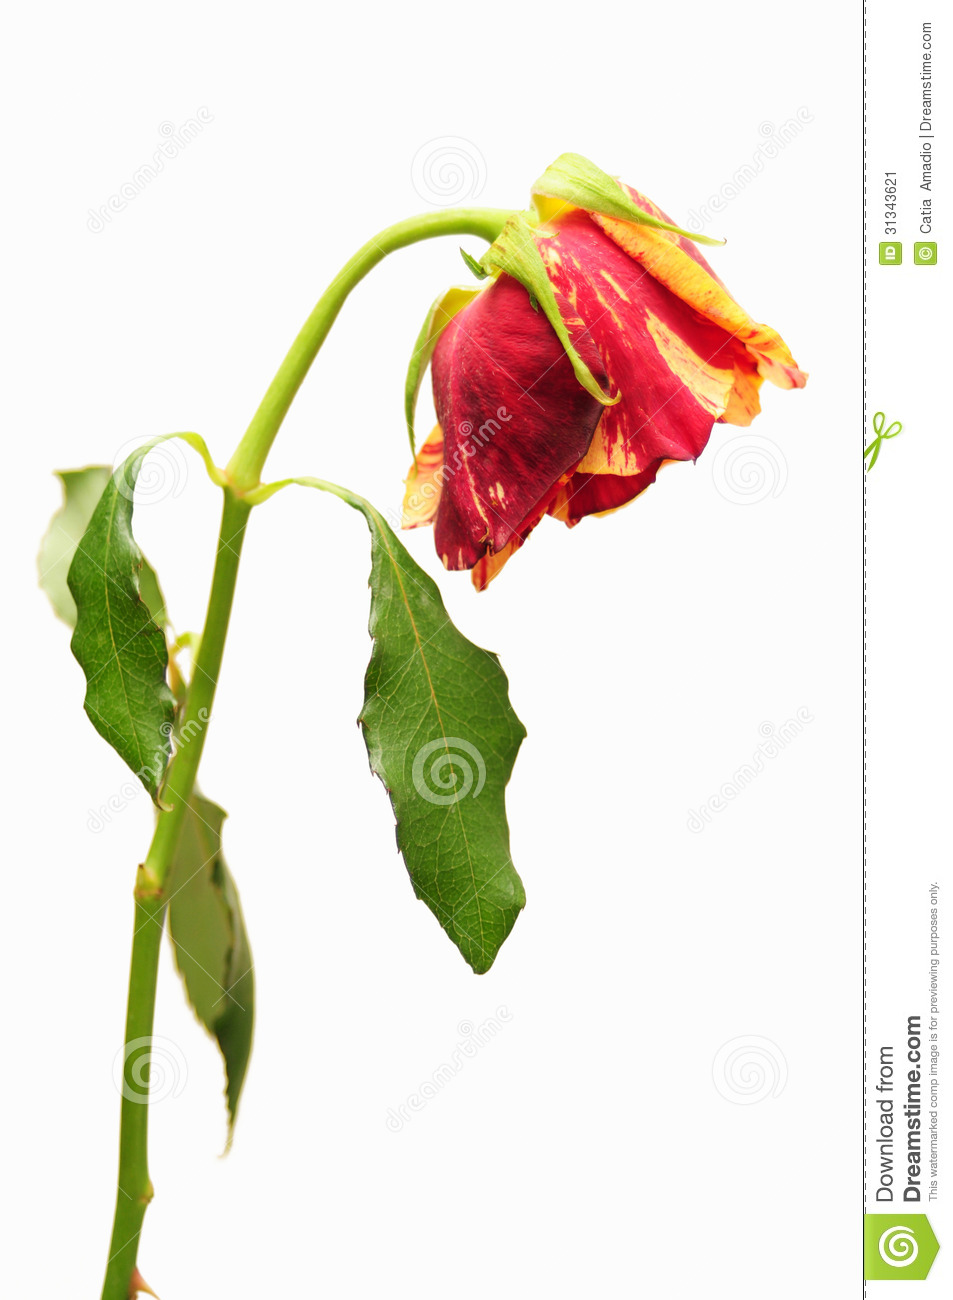 clipart dead flowers - photo #35